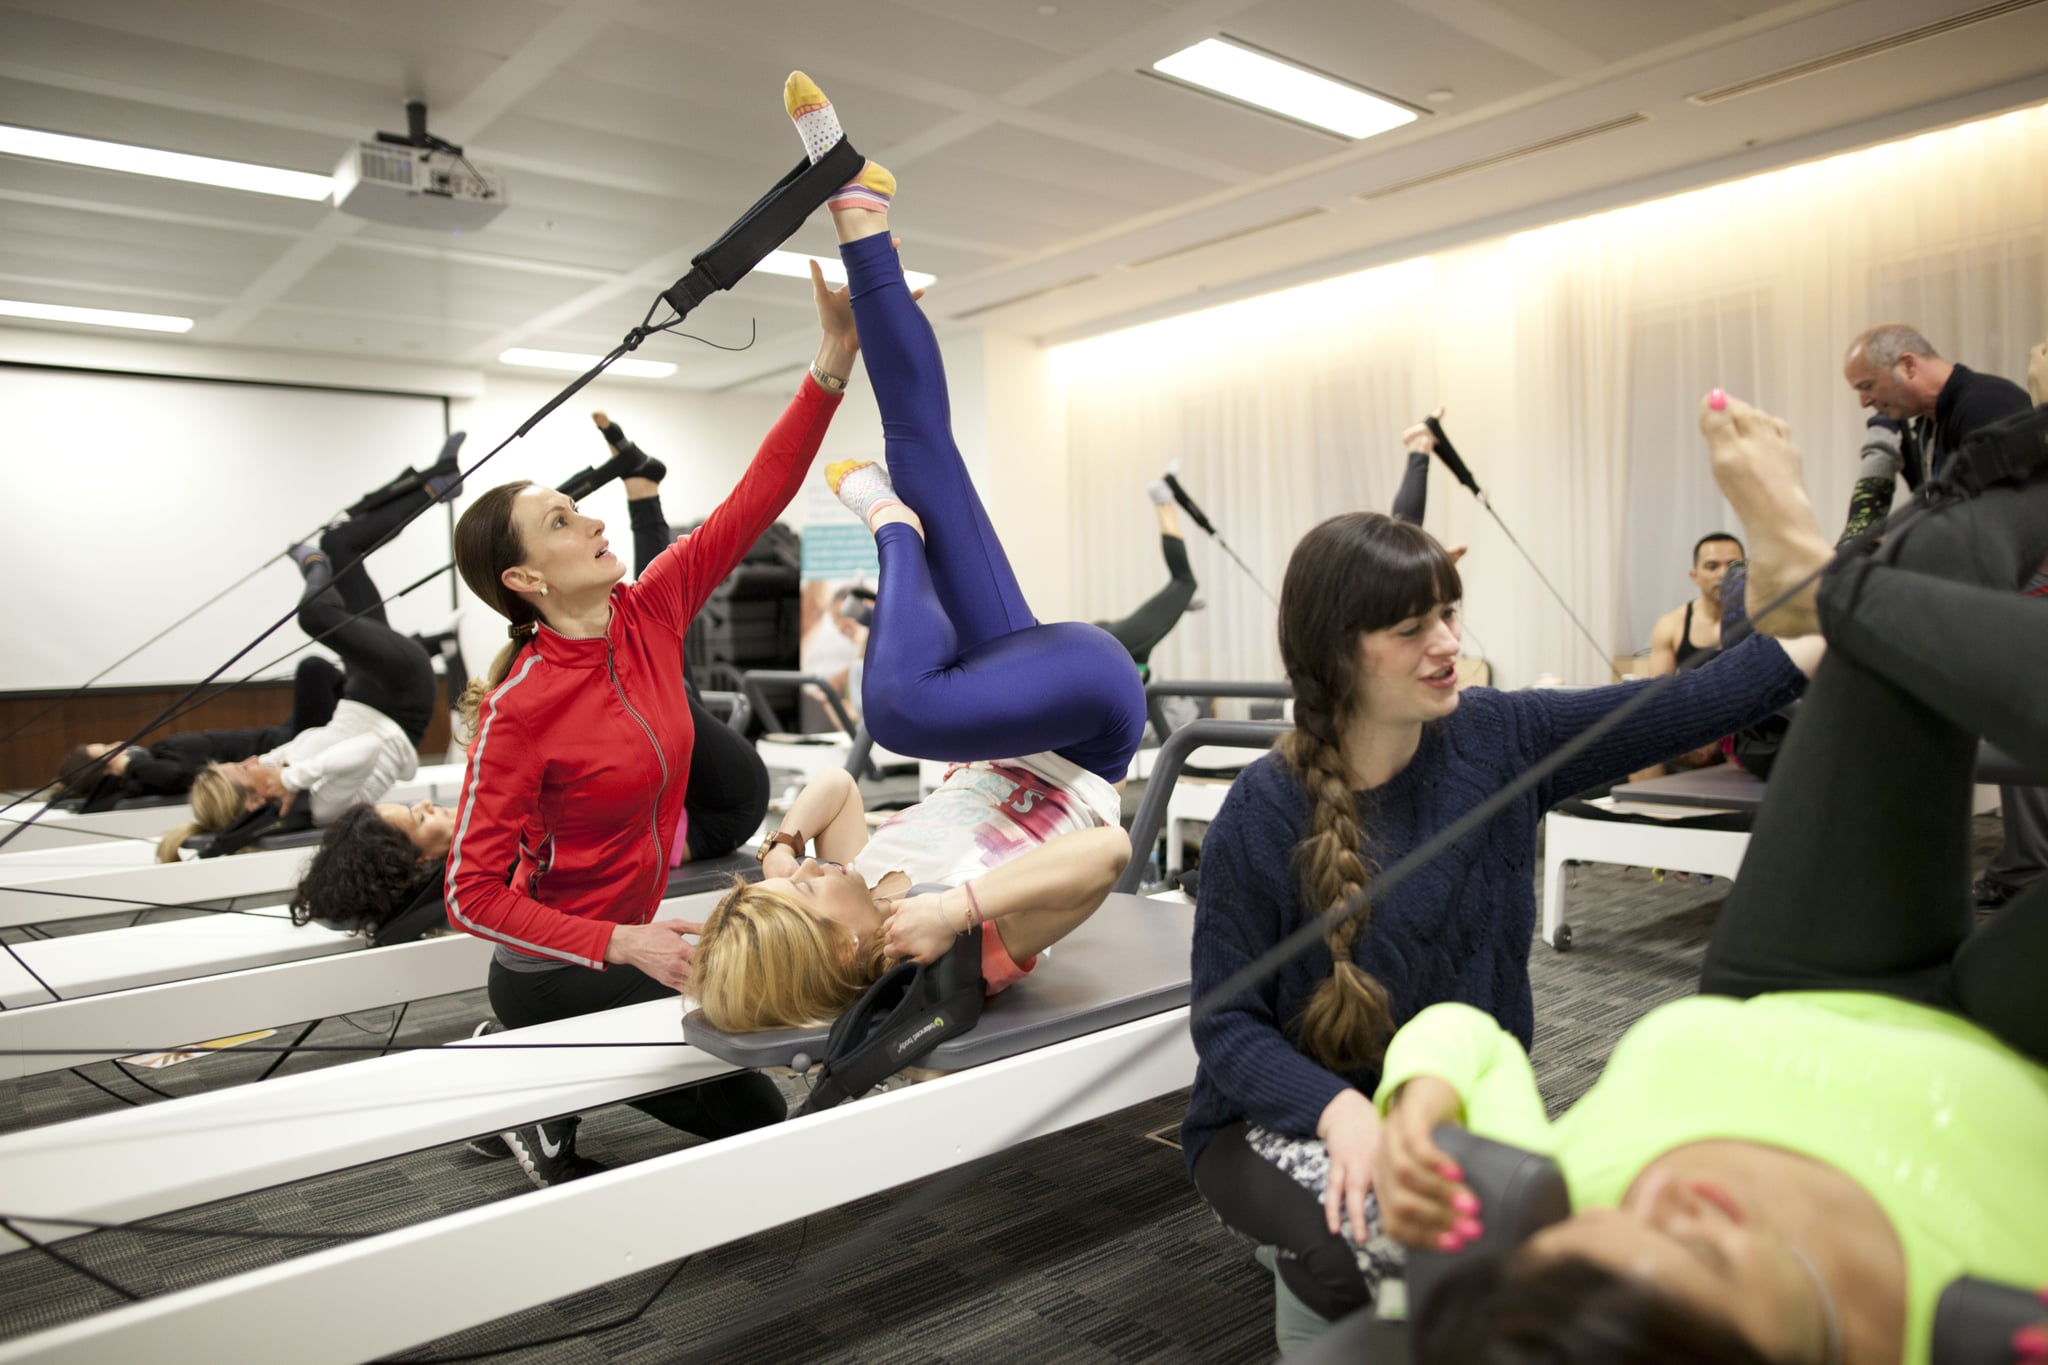 Pilates Is Famous For Sculpting Lean Bodies, but It's Actually the Ultimate Injury Rehab